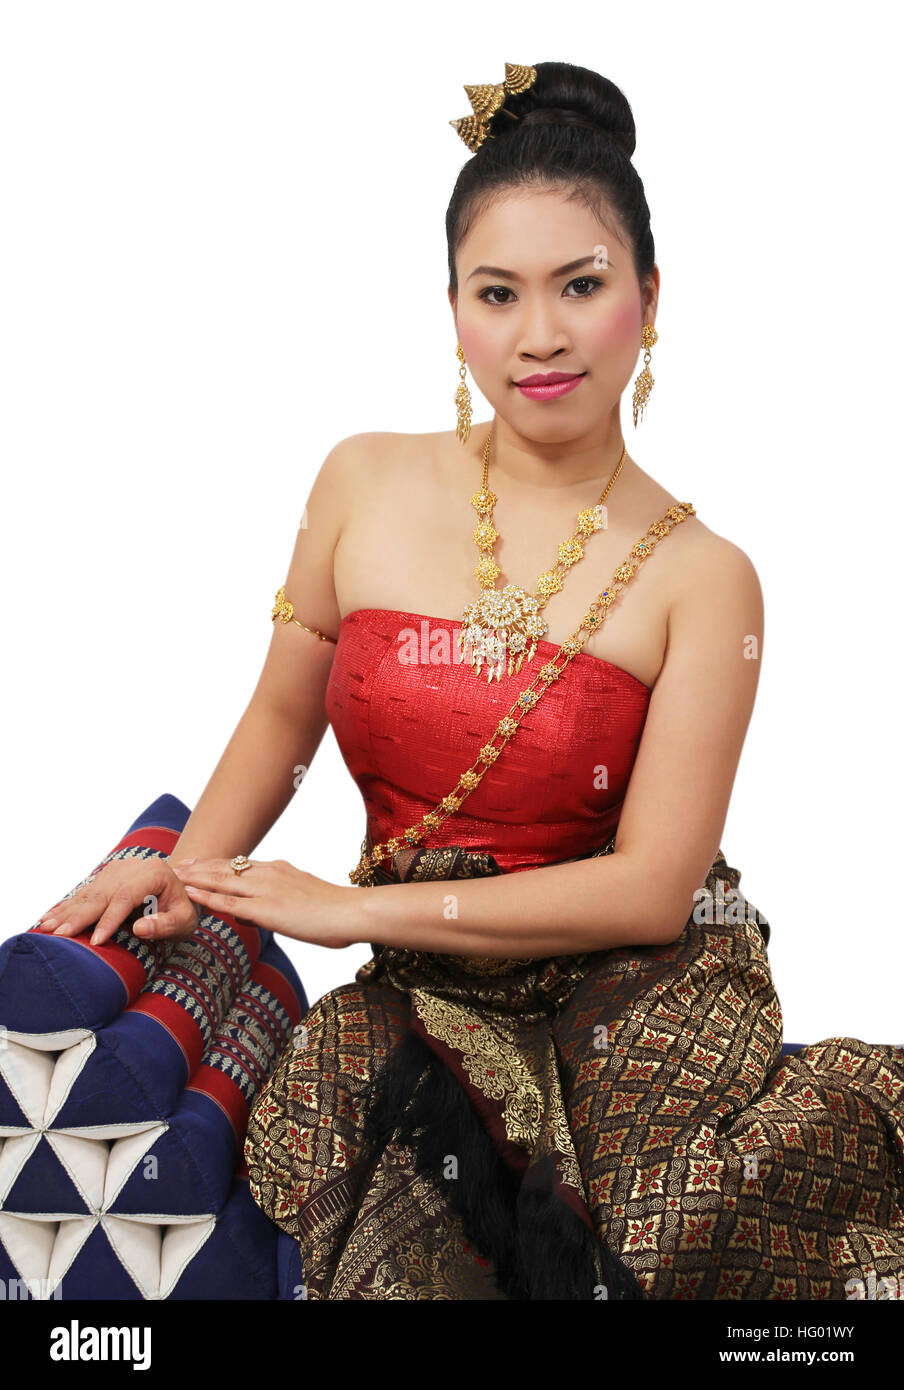 woman in thai traditional suit on white background - Stock Image